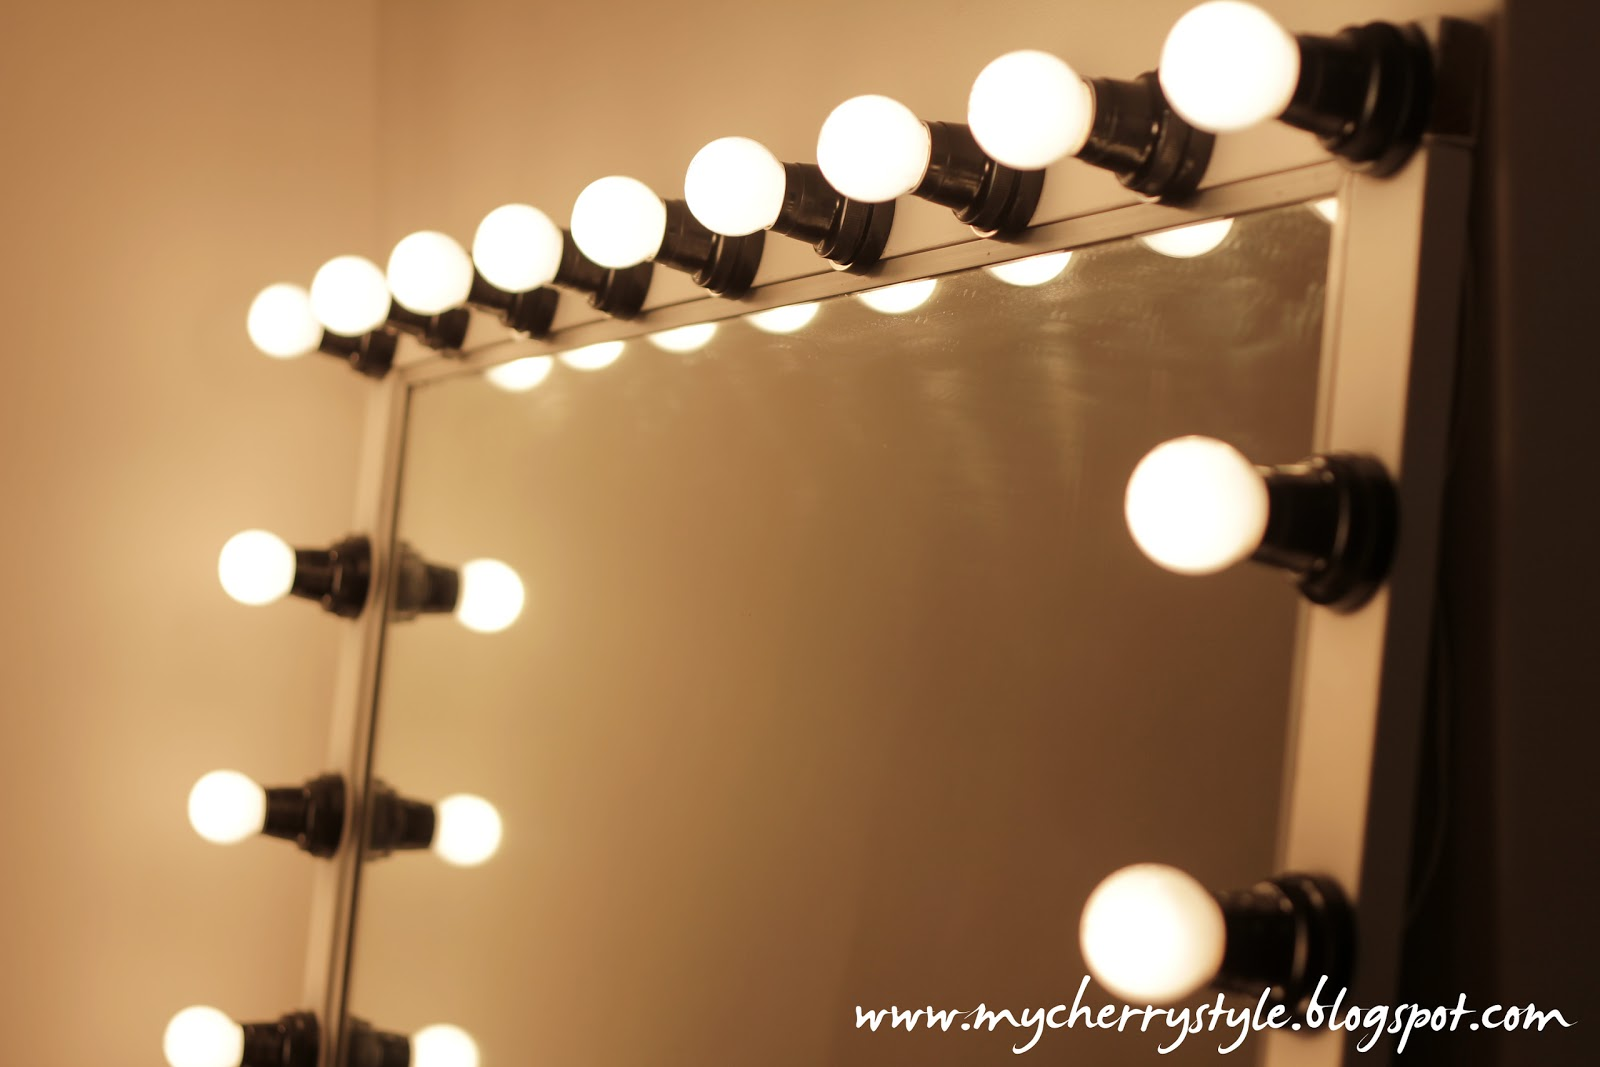 Diy hollywood style mirror with lights tutorial from scratch for diy hollywood style mirror with lights tutorial from scratch for real my cherry style mozeypictures Gallery